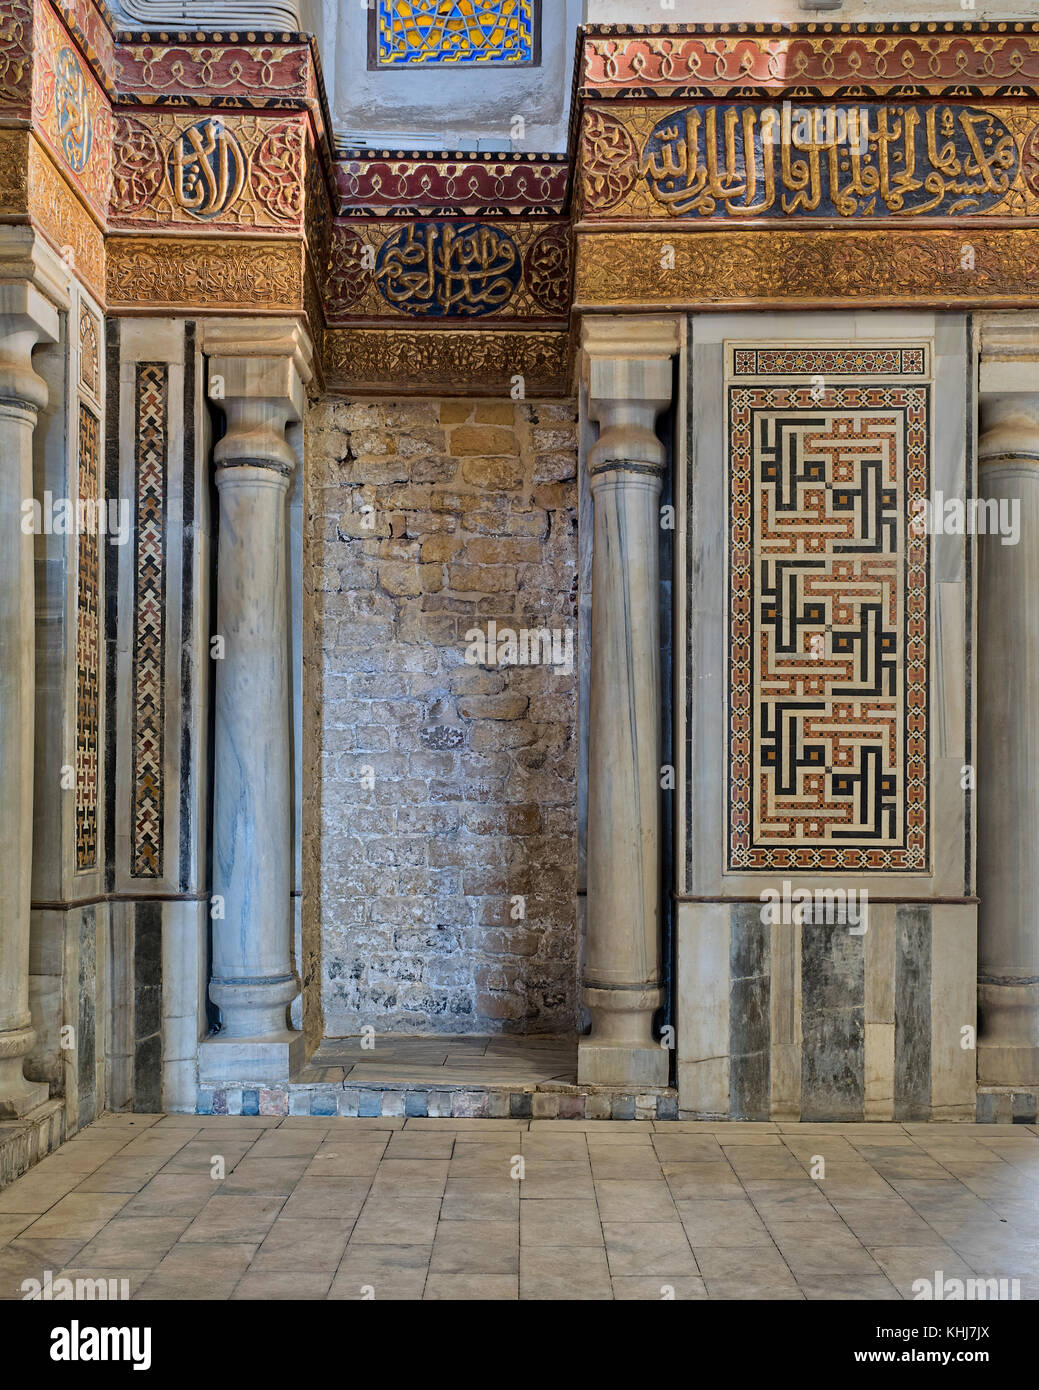 Interior view of decorated marble walls surrounding the cenotaph in the mausoleum of Sultan Qalawun, part of Sultan - Stock Image